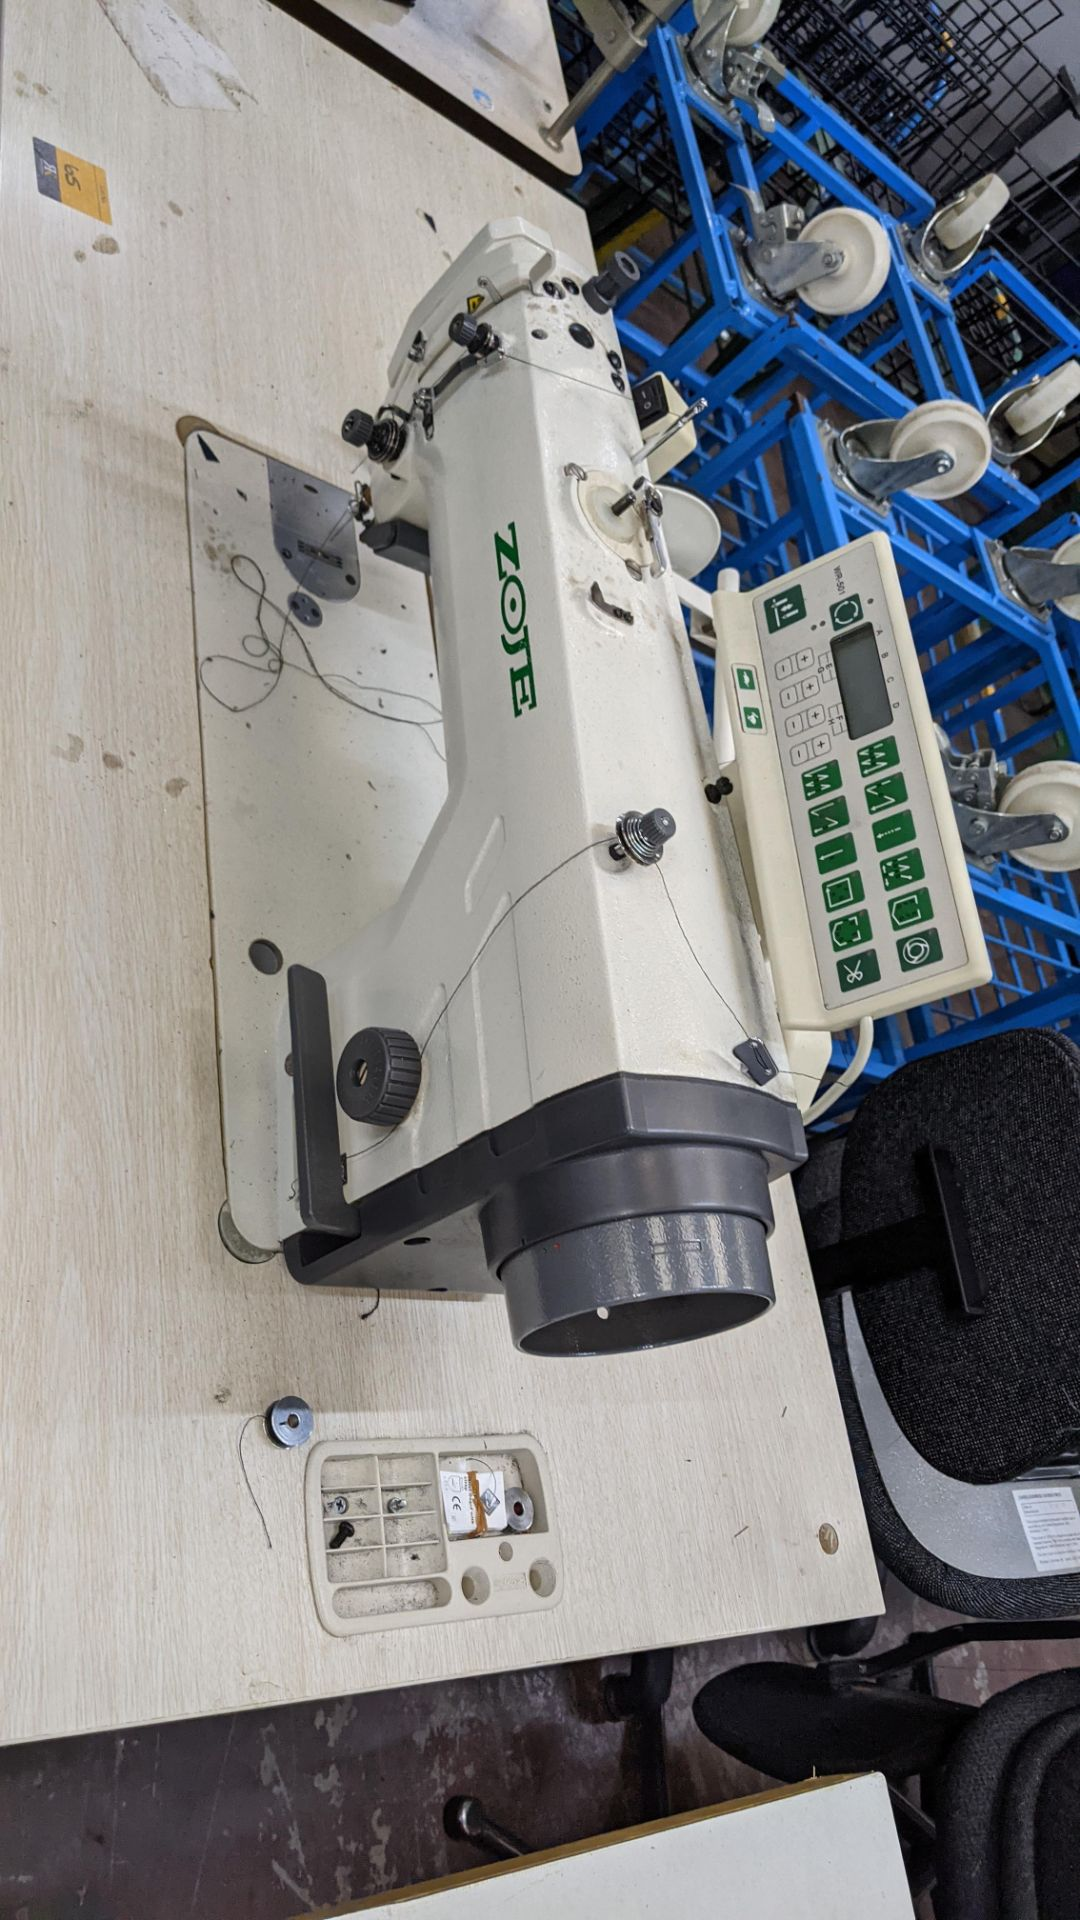 Zoje model ZJ9800A-D3B/PF sewing machine with WR-501 controller - Image 5 of 17